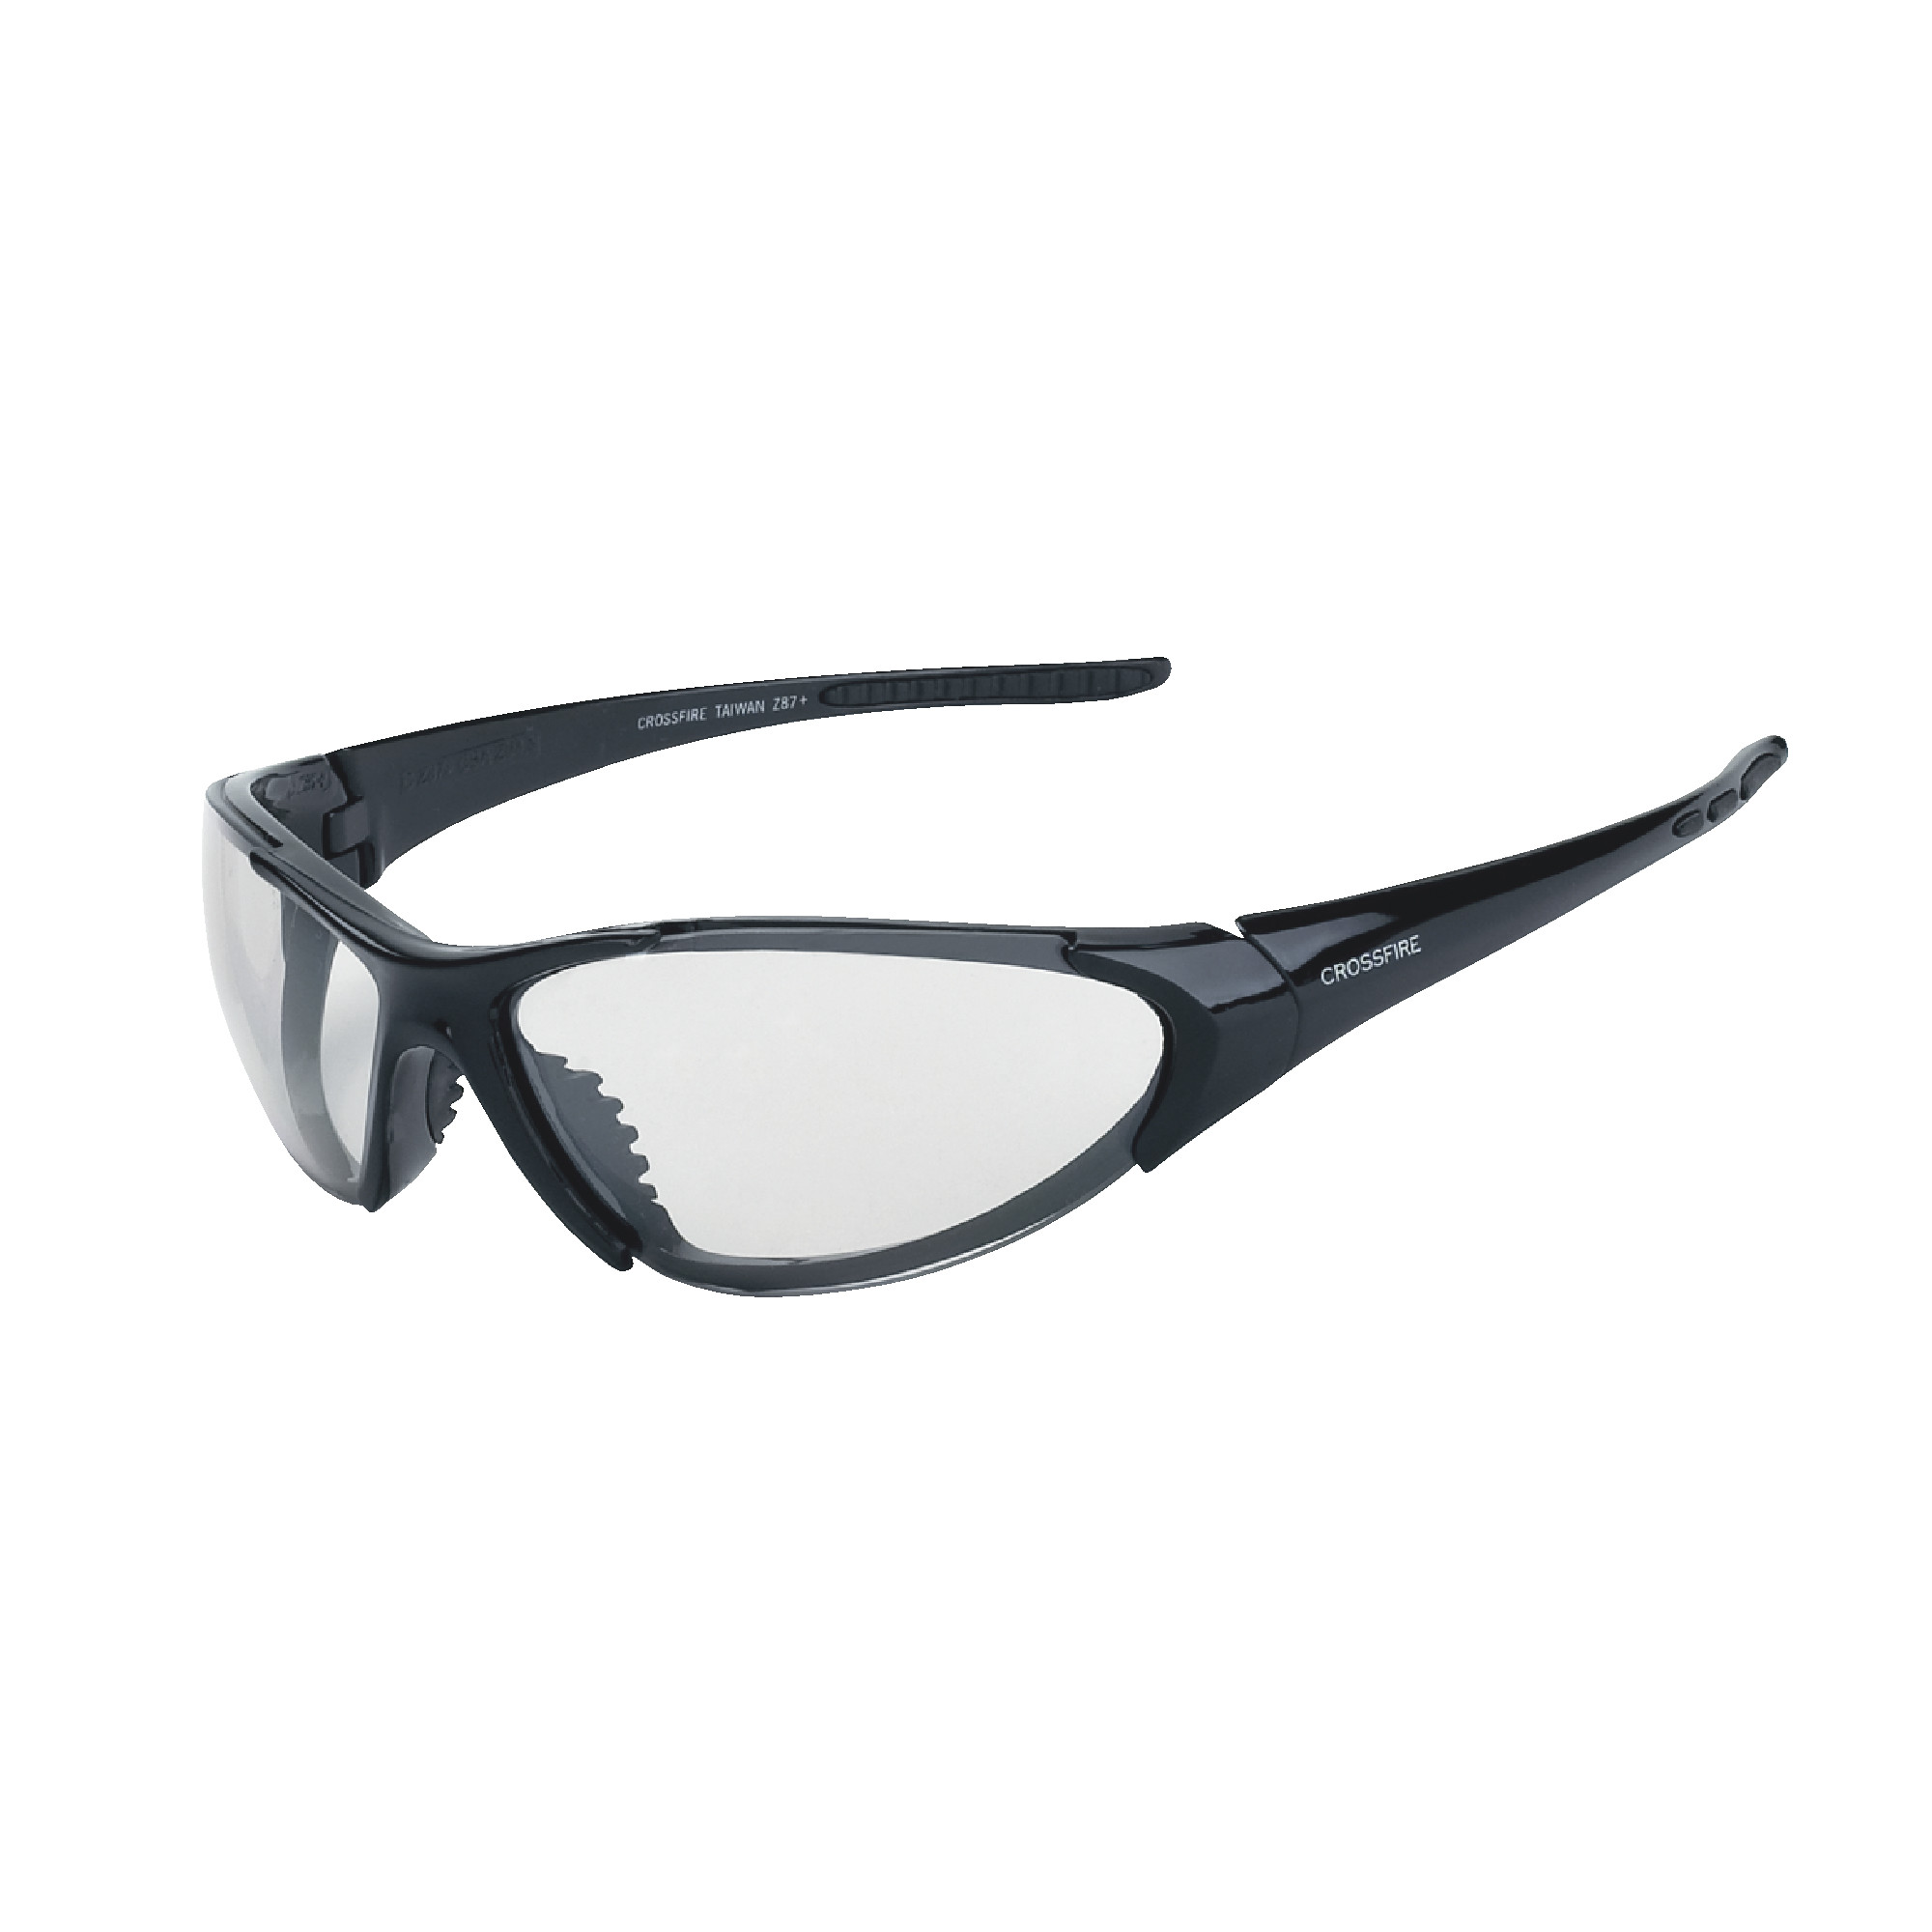 18615 CORE BLK FRAME IN/ OUTDOOR LENS-CROSSFIRE